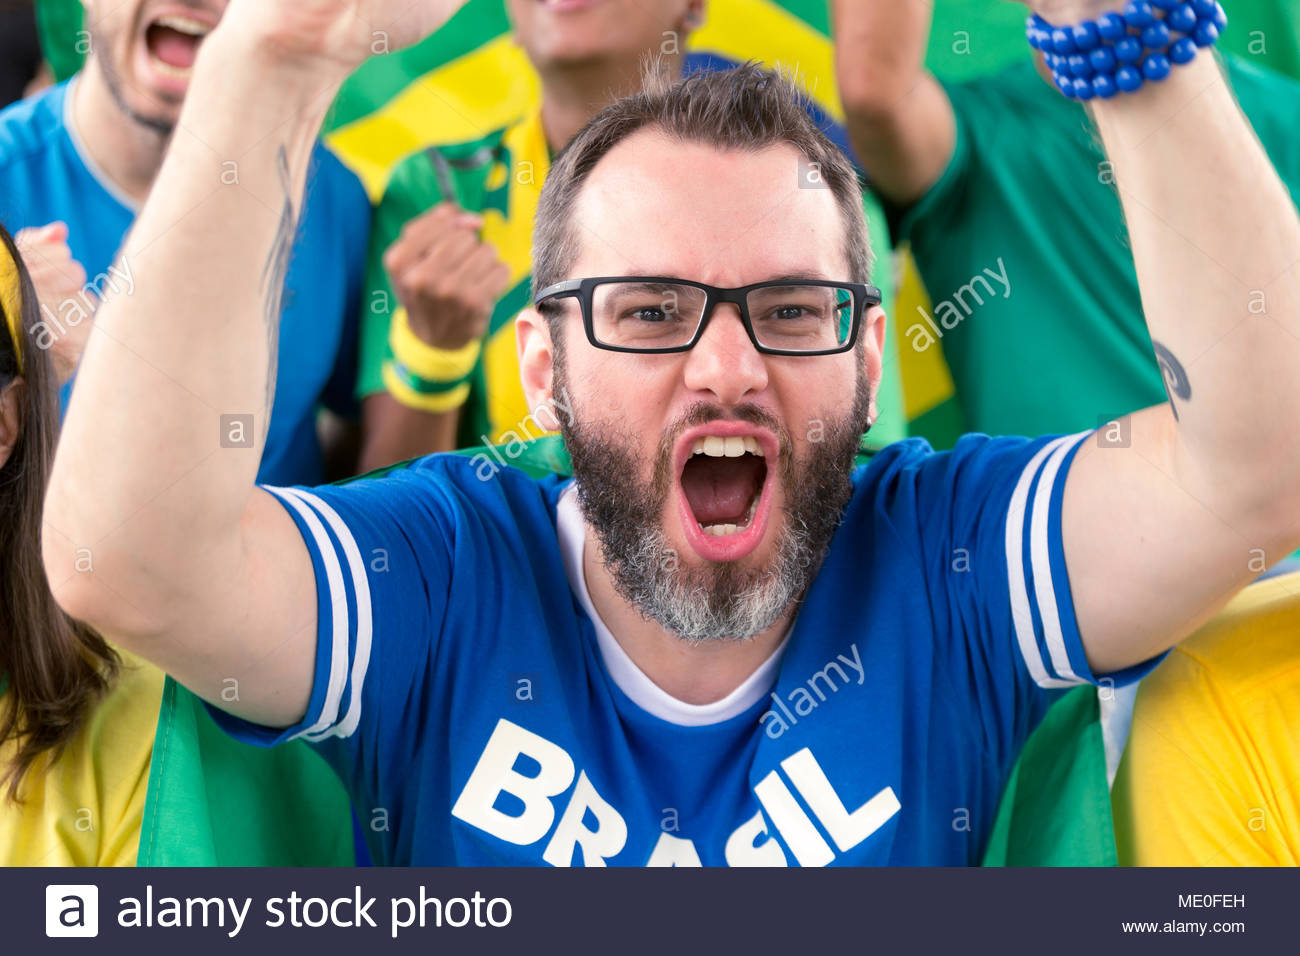 Group of fans cheer for brazilian team on stadium bleachers. Emotions portrait. Goal, victory, celebration.  Man wearing generic brandless blue t-shir - Stock Image